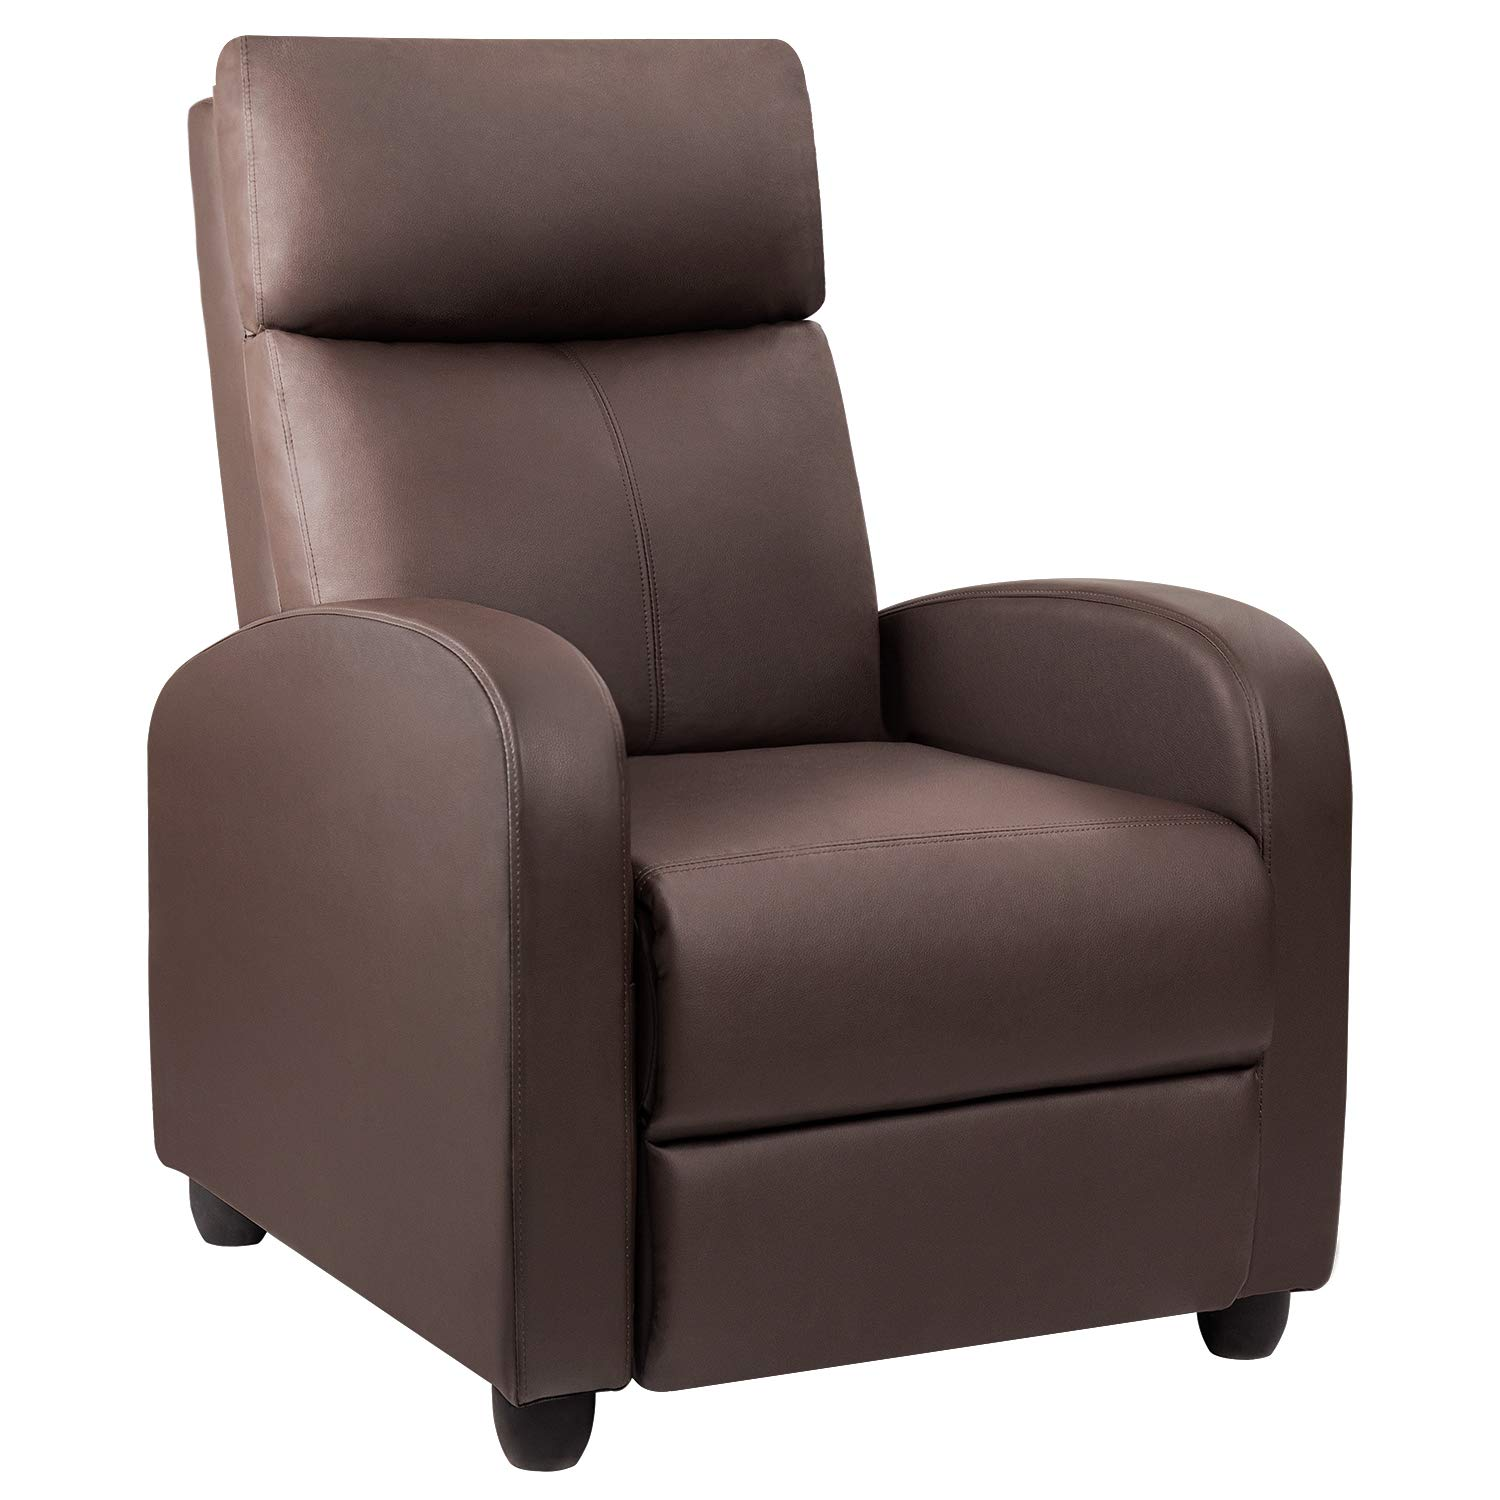 Devoko Adjustable Single Recliner Chair, PU Leather Modern Living Room Chair, Padded Cushion Reclining Sofa for Home Theater Seating (Brown) by Devoko